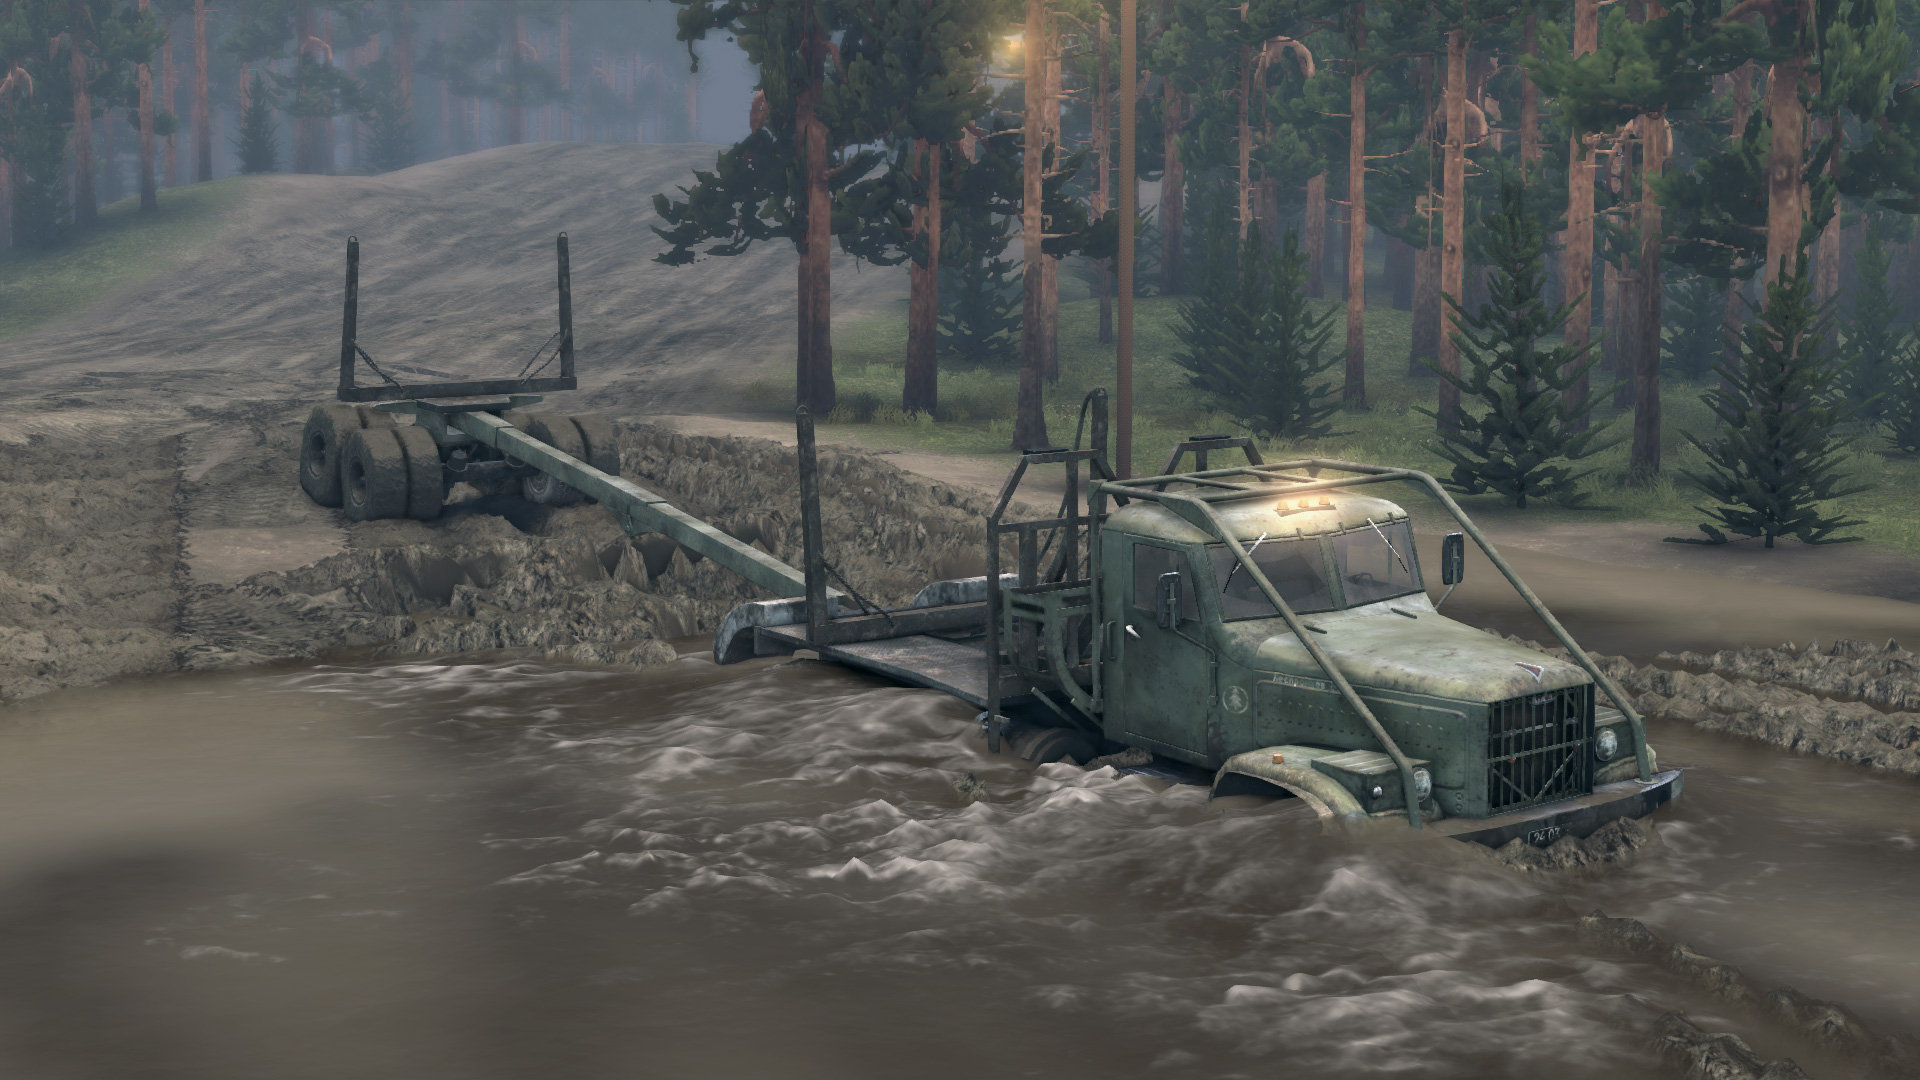 It took 18 days for a game about off-road trucking to sell 100K copies